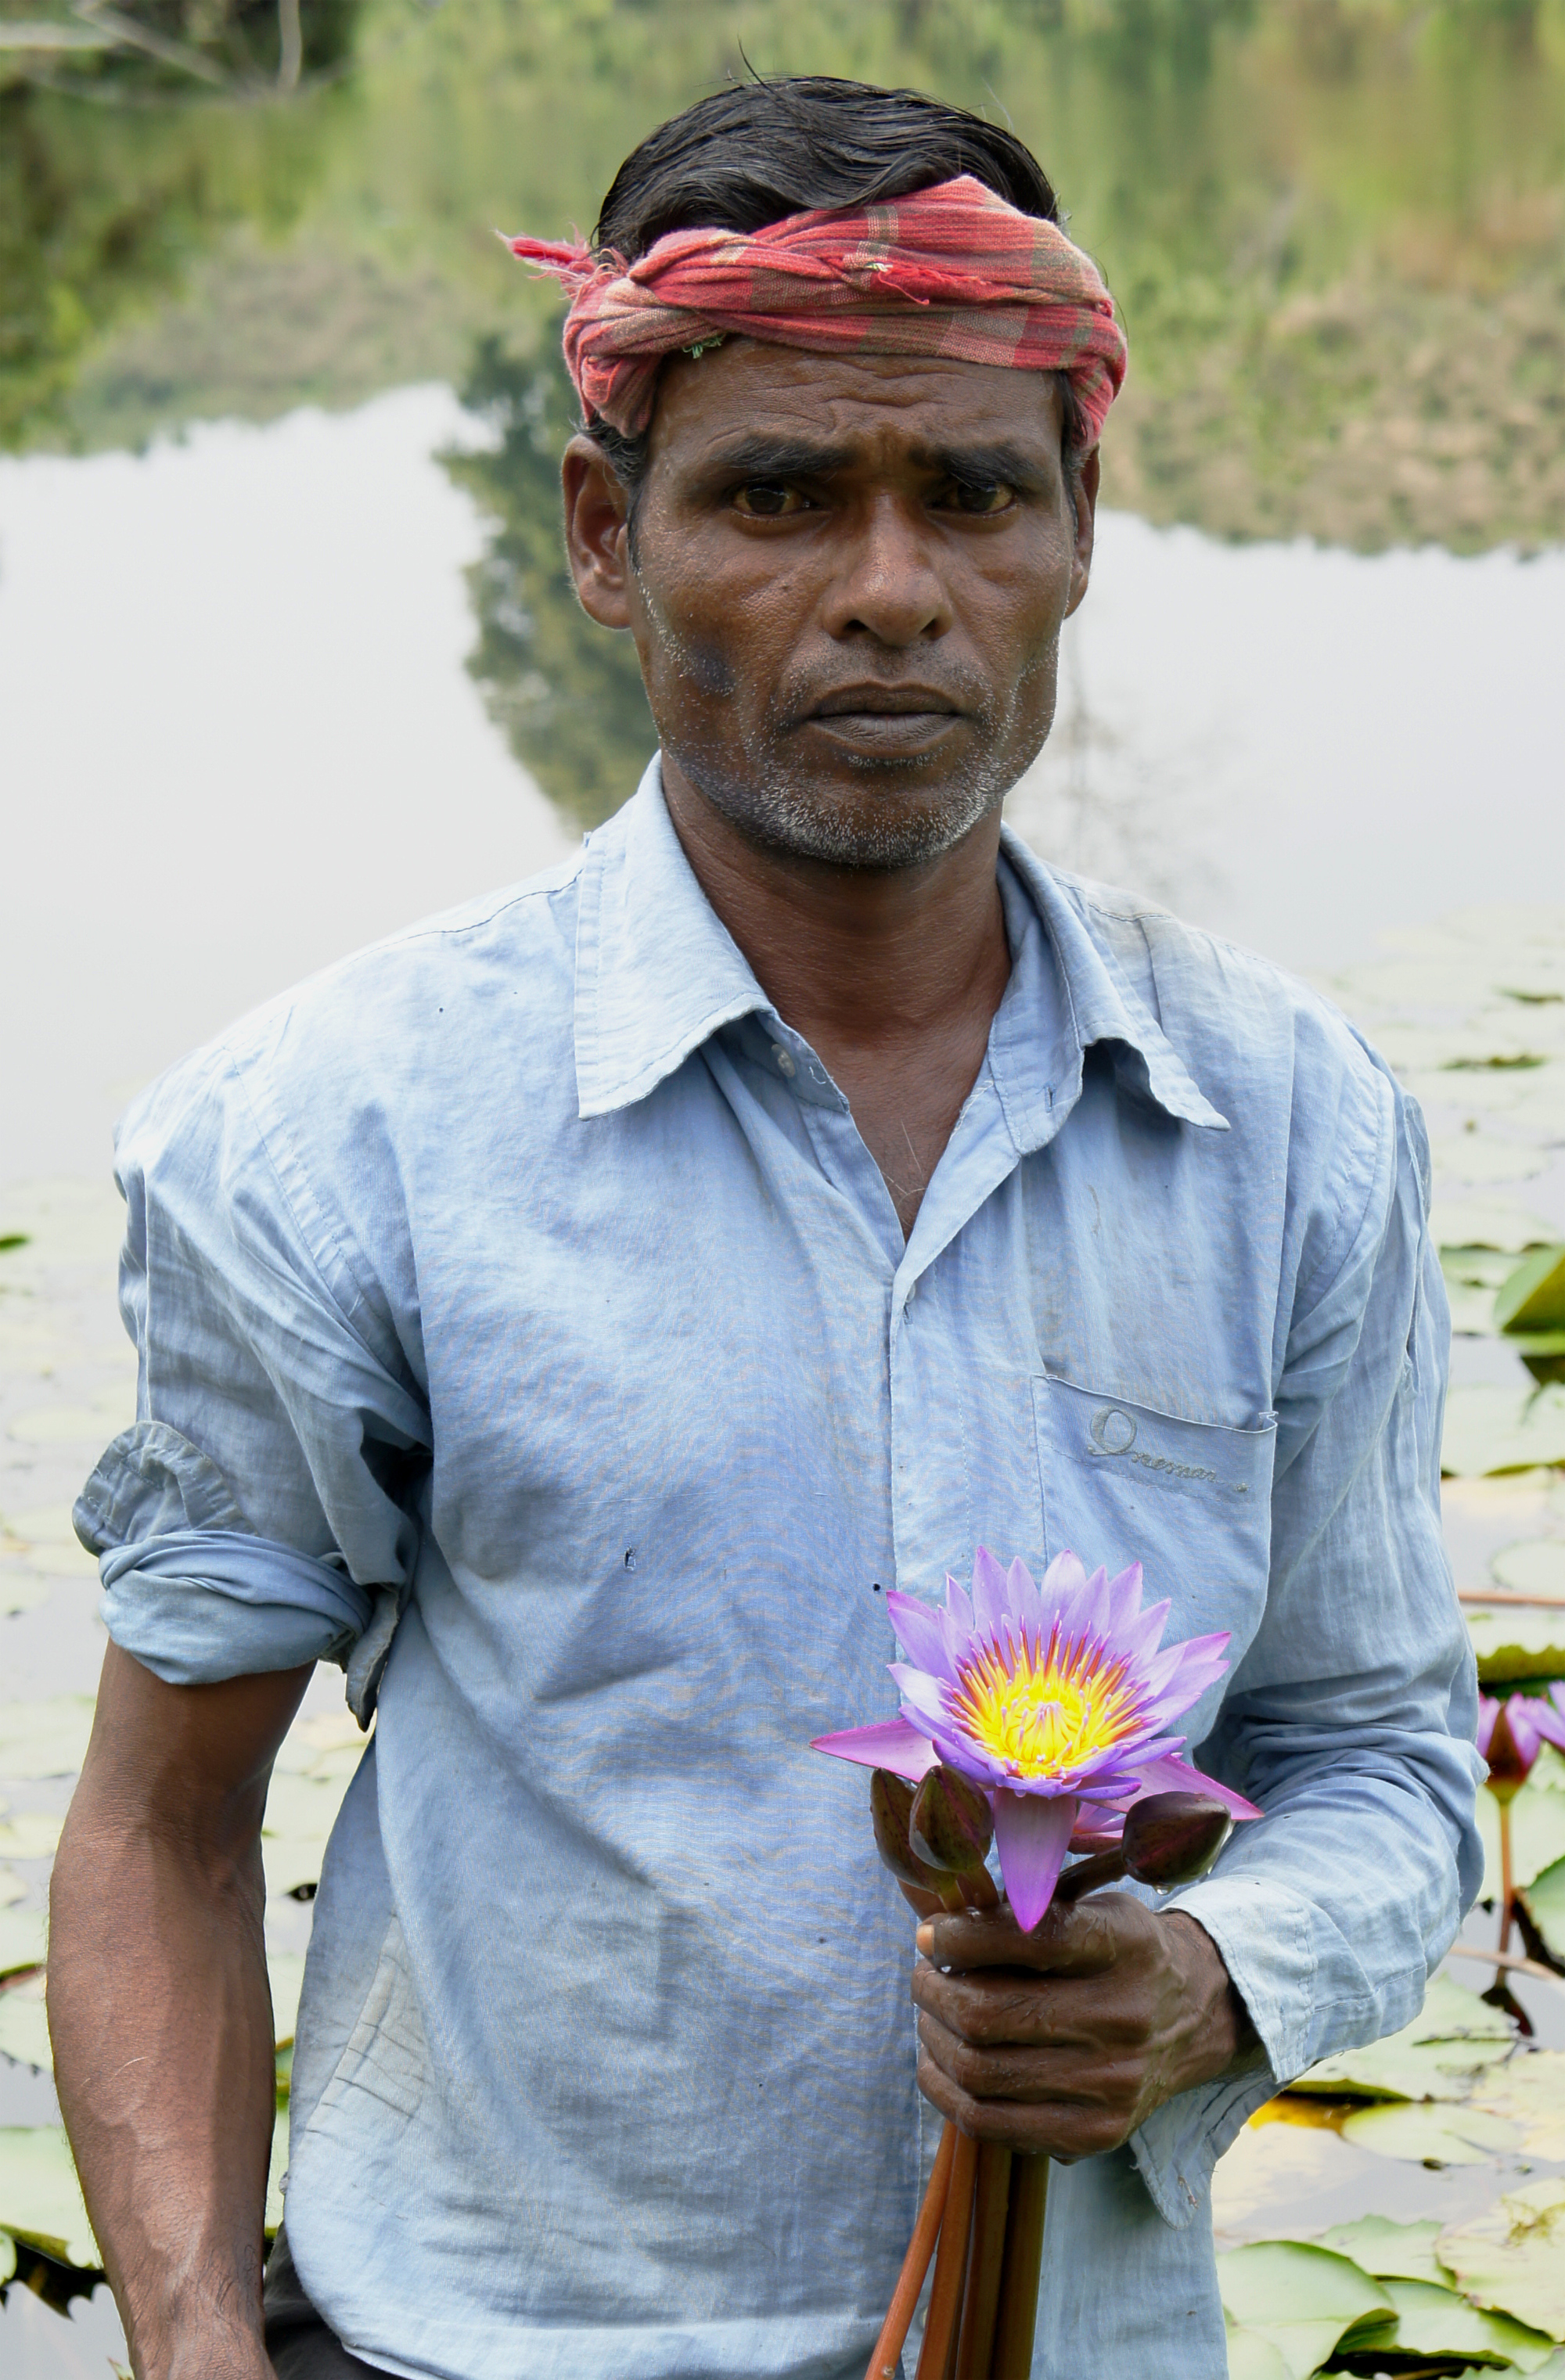 Man with Lilly